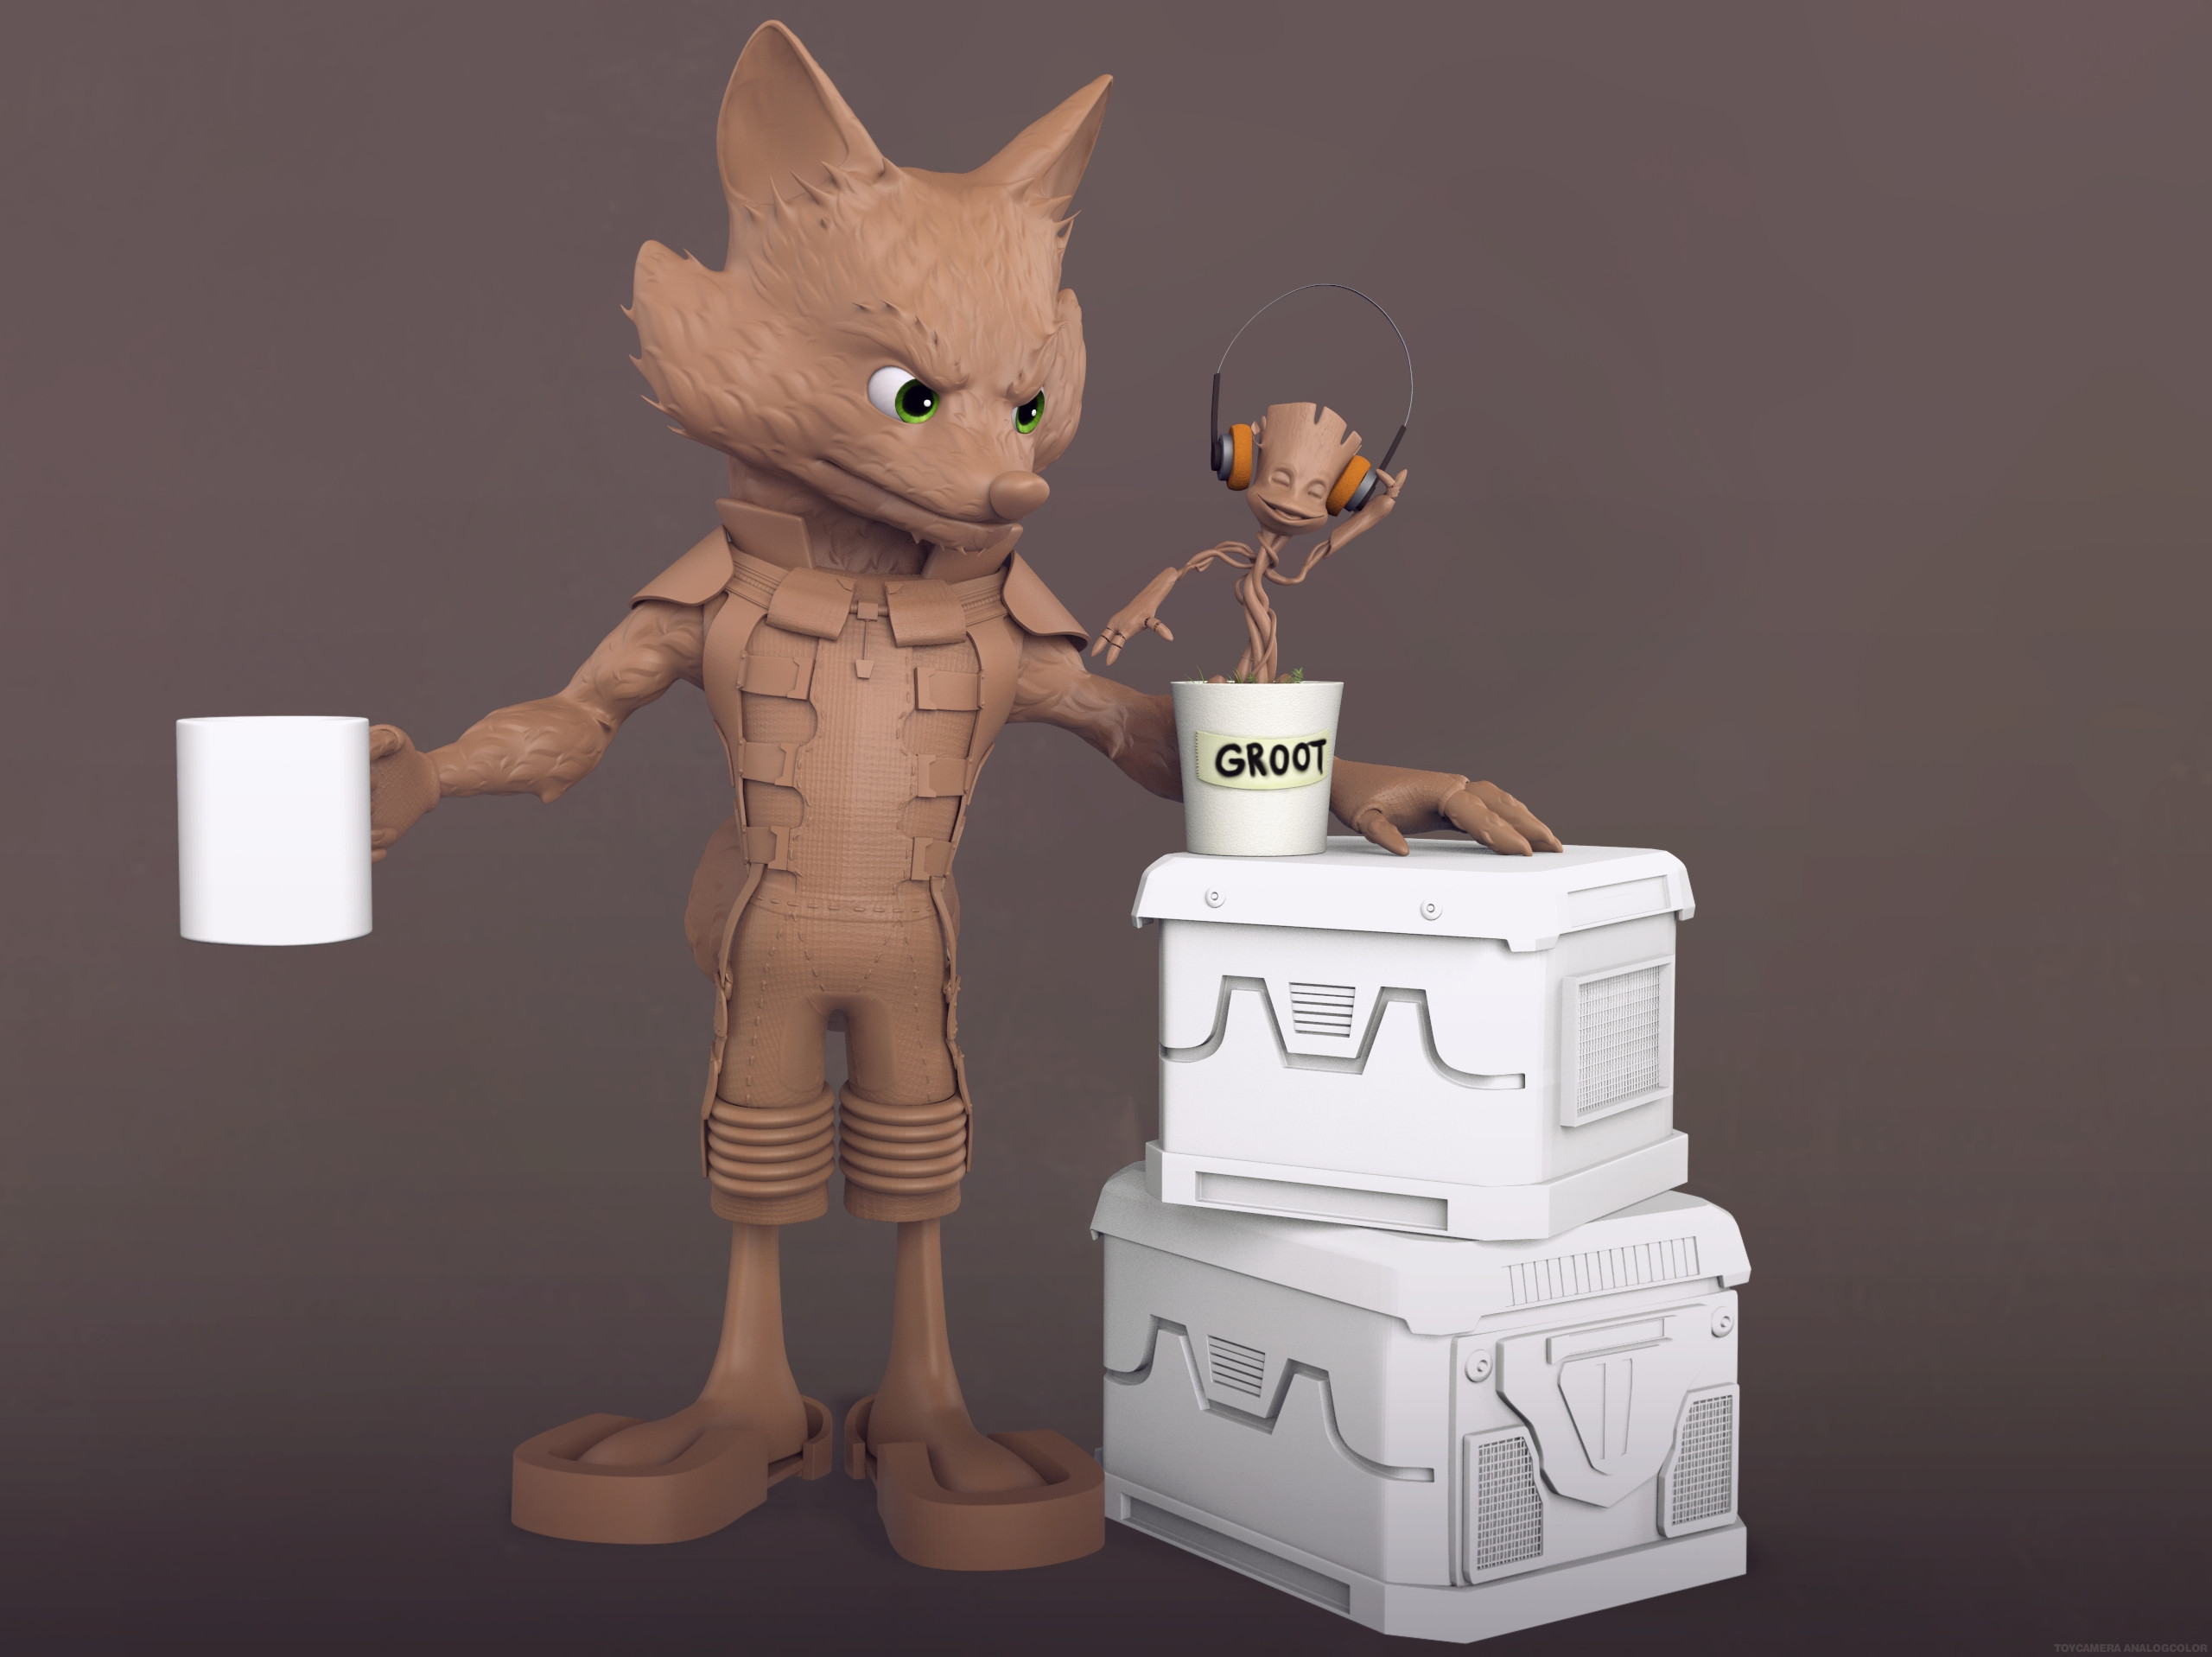 Clay render with Groot.